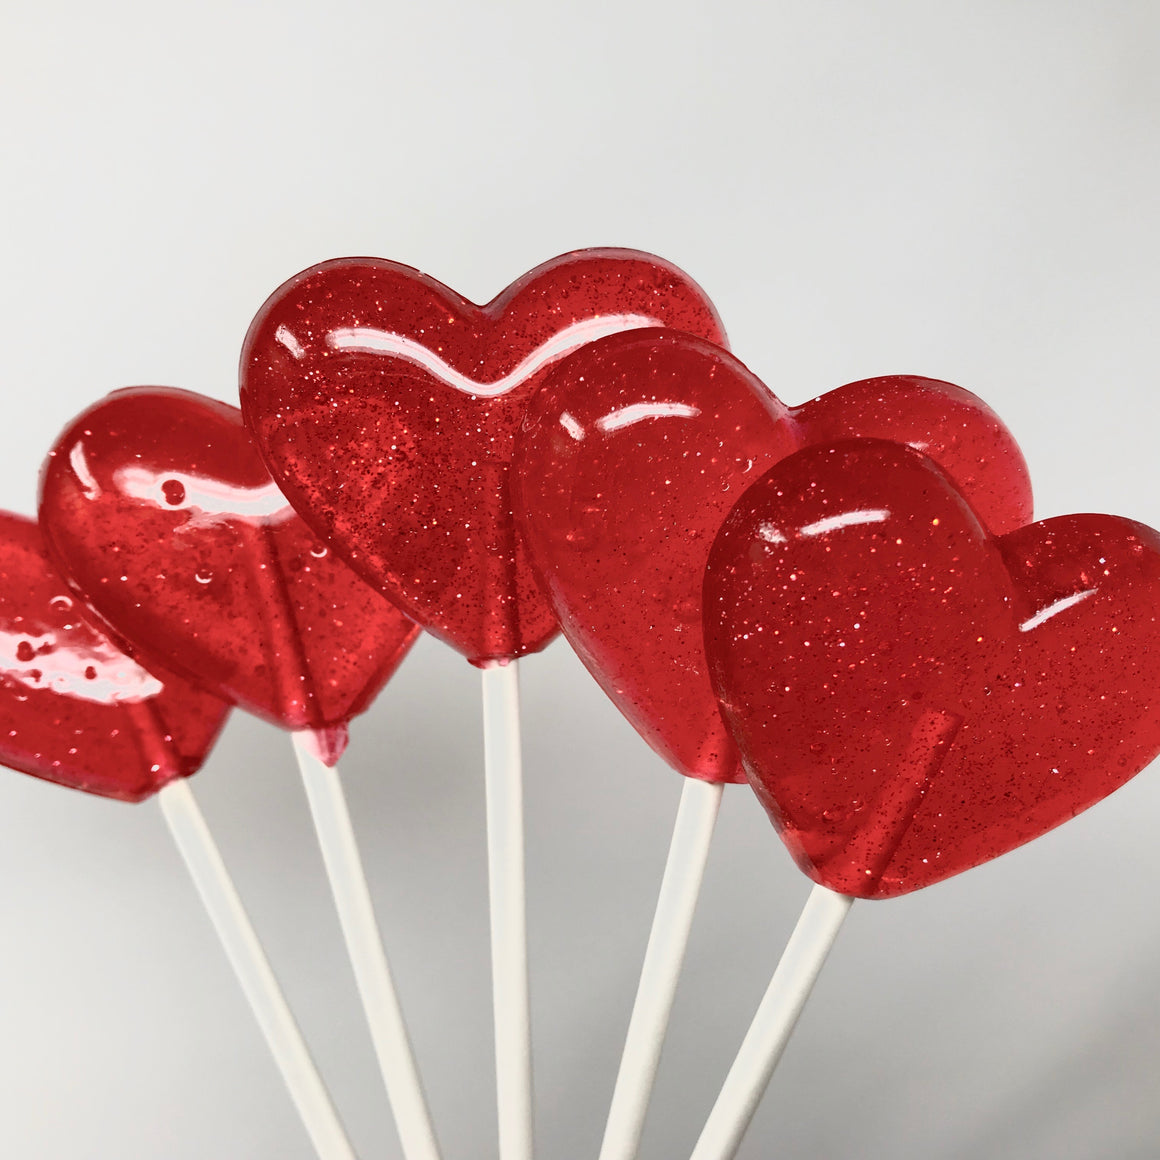 Red Glitter Heart lollipops (6 pc) by I Want Candy!